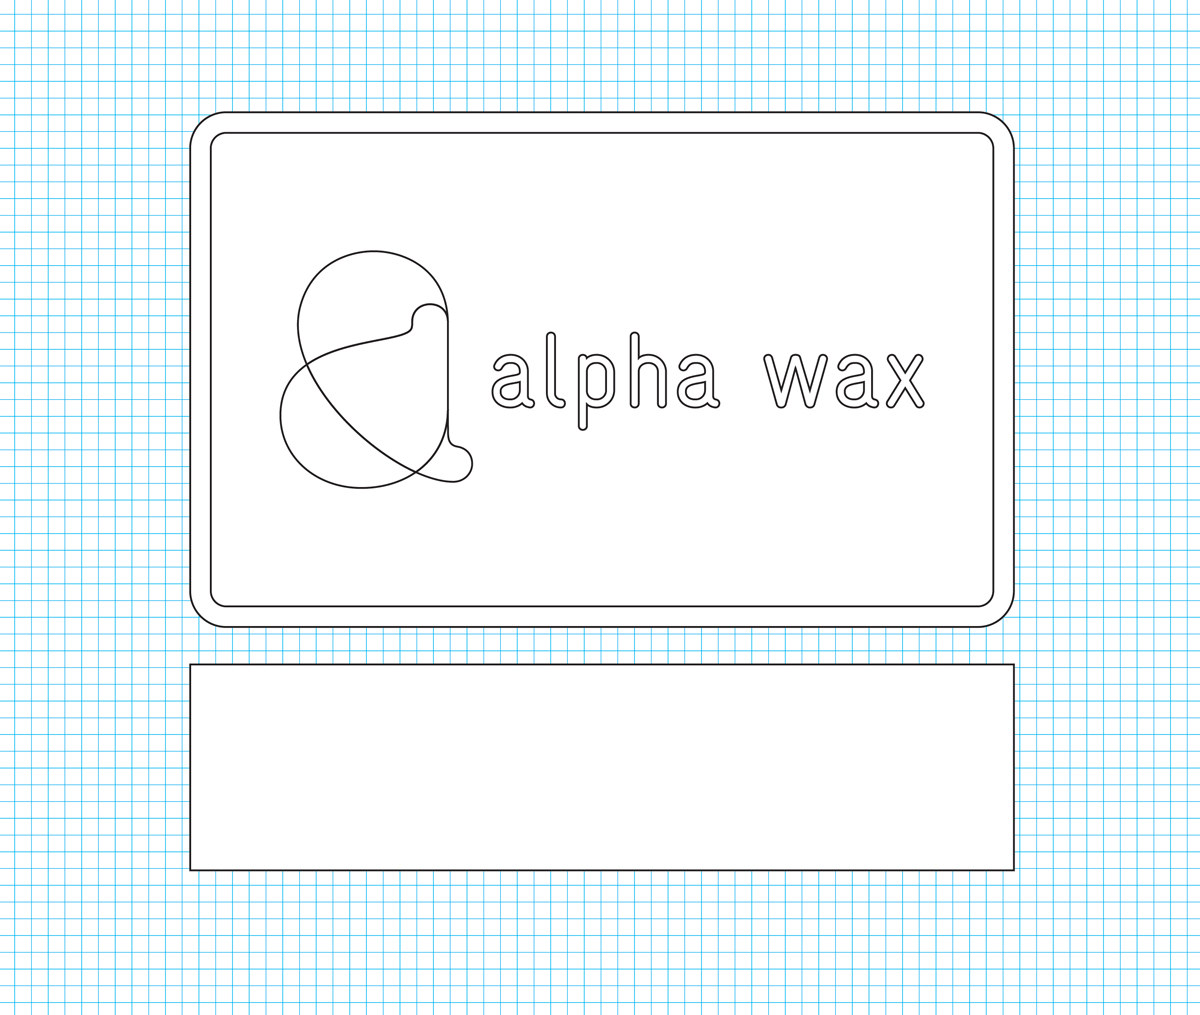 alpha wax parafine blok moedermodel mal